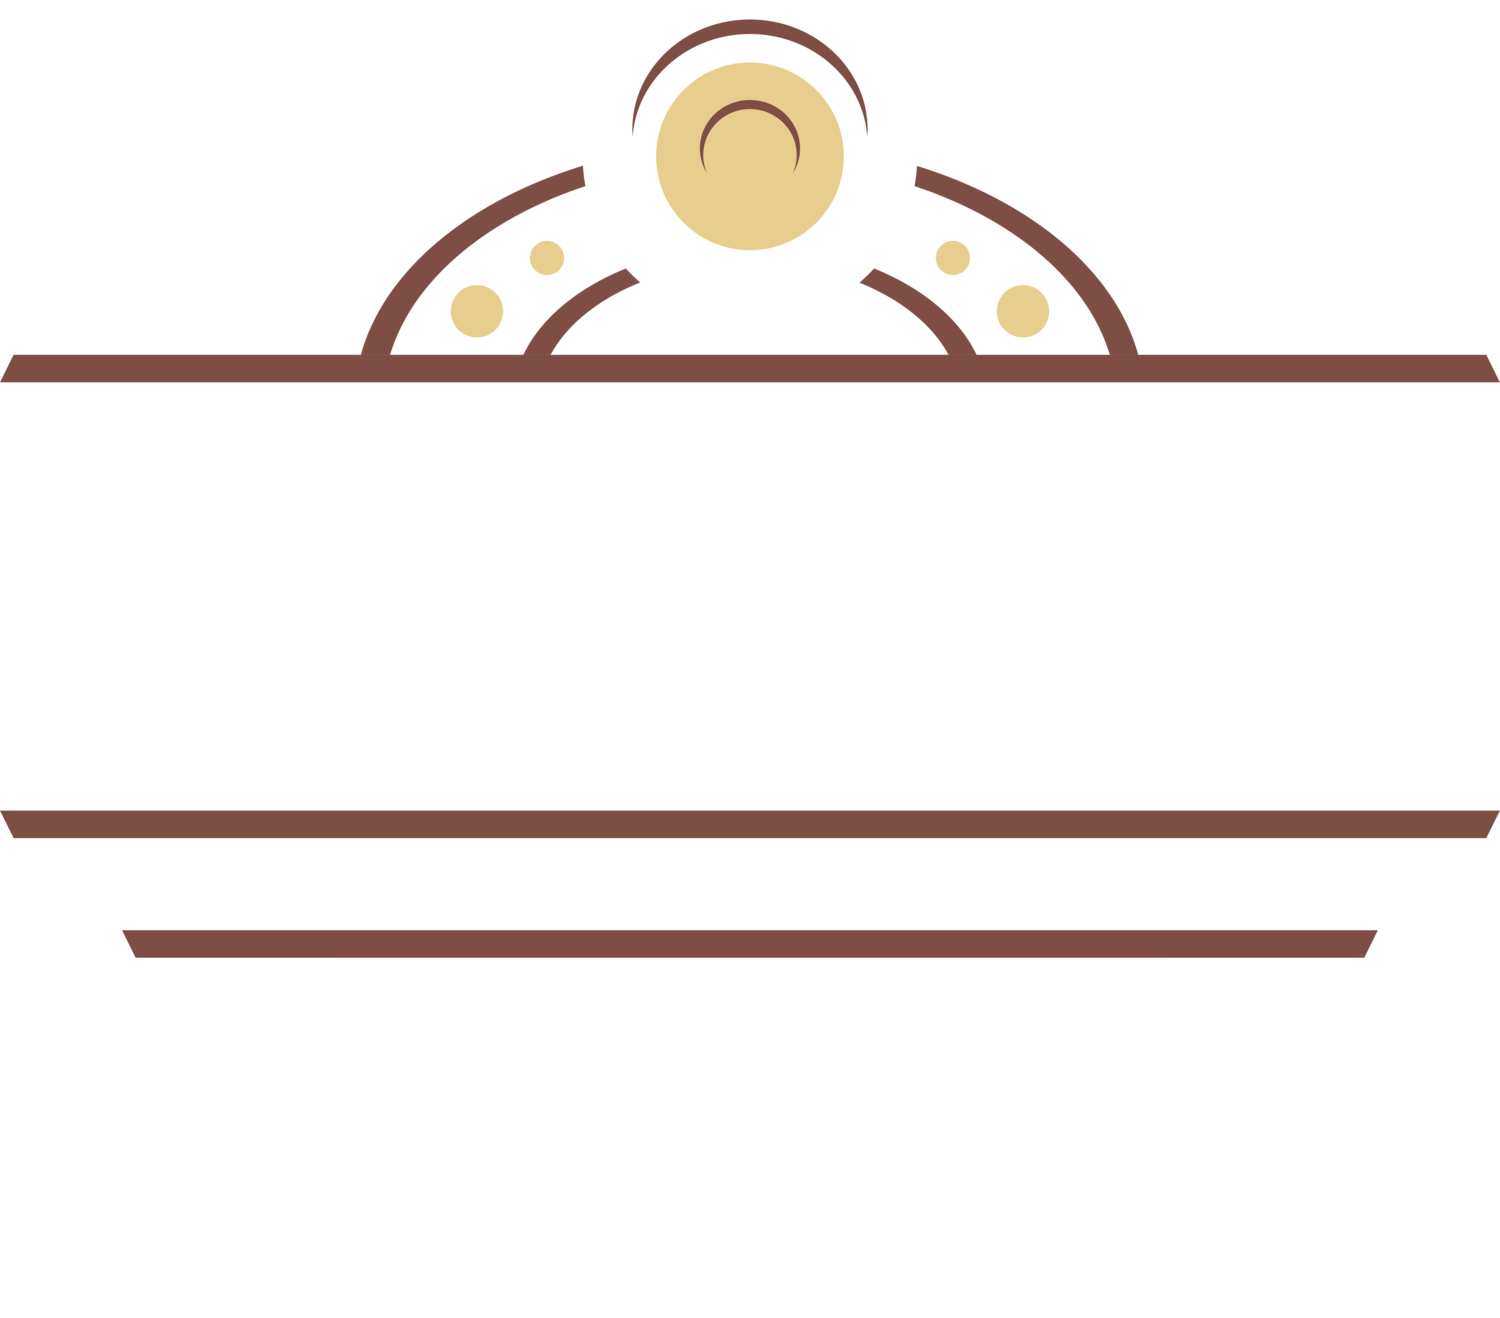 Boonton Station 1904